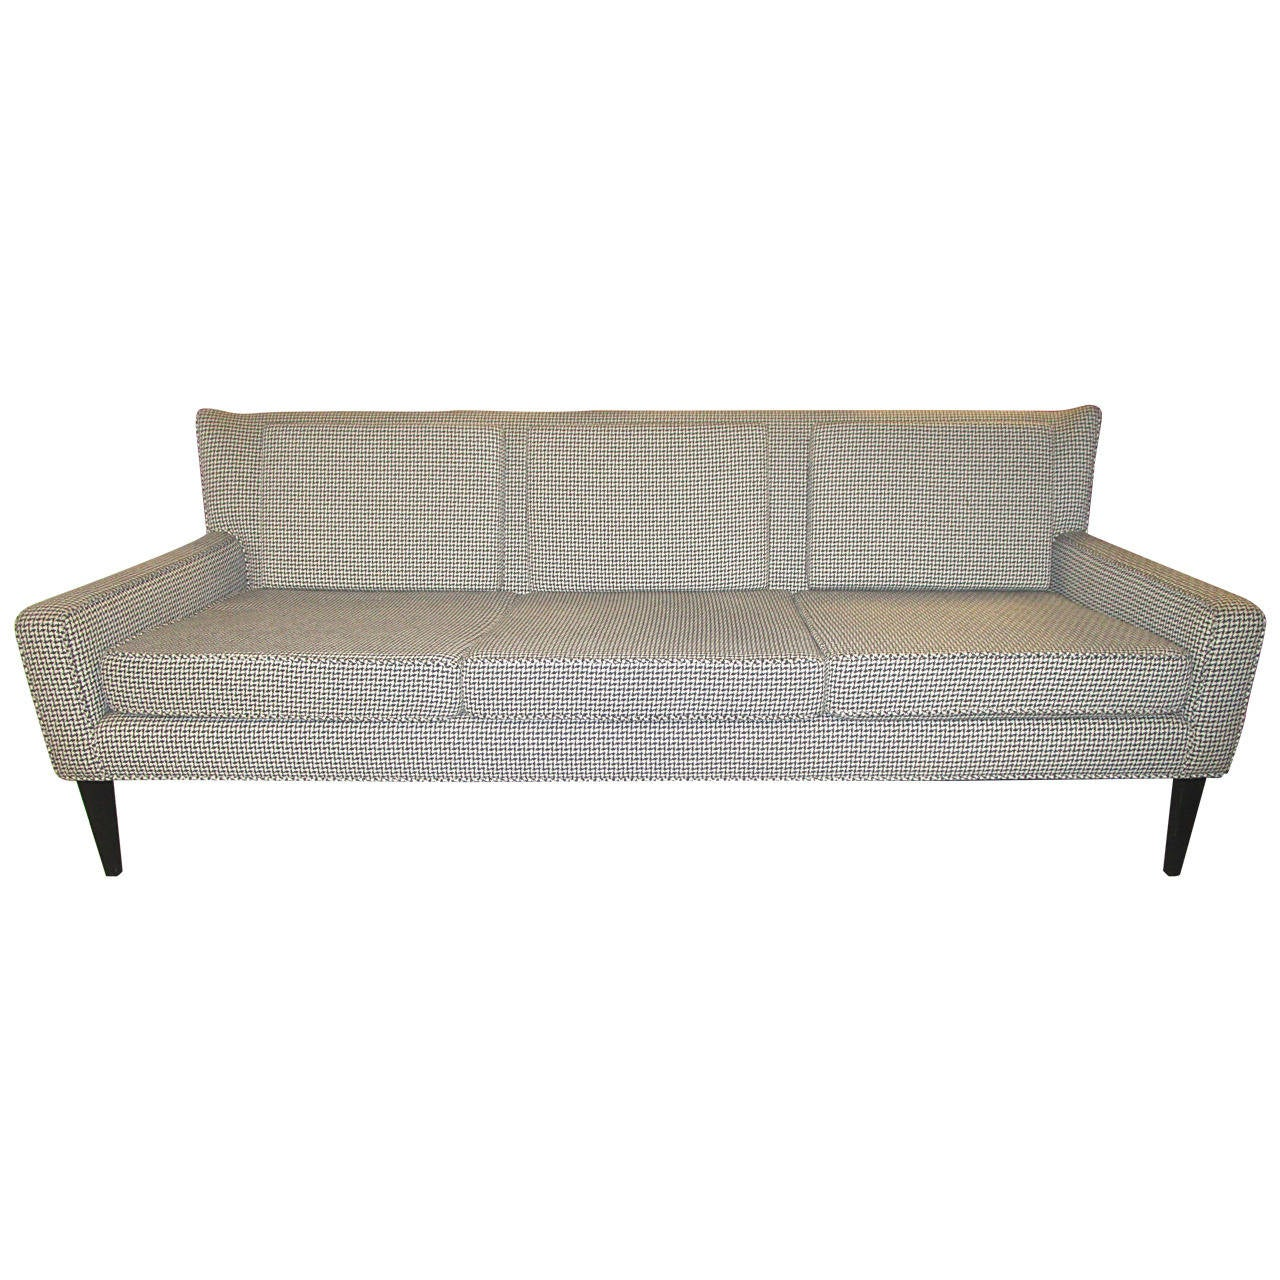 Sofa Planer Paul Mccobb Planner Group Sofa At 1stdibs